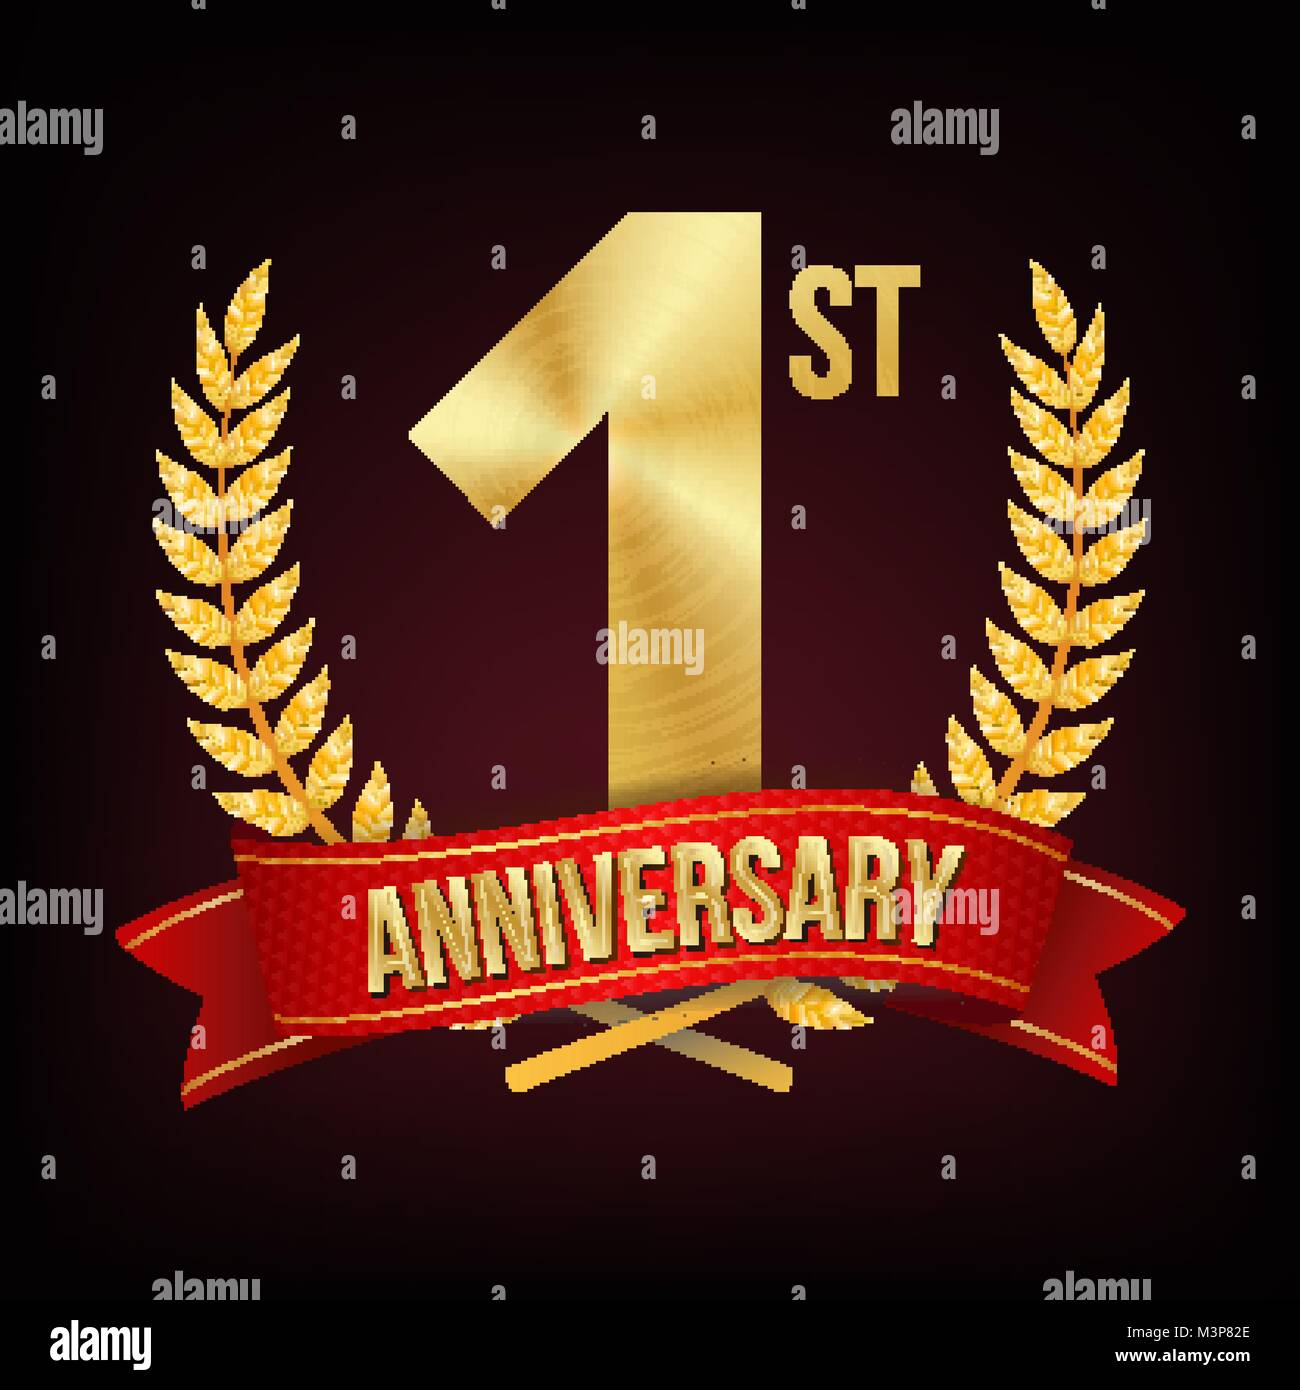 1 year business anniversary stock photos 1 year business